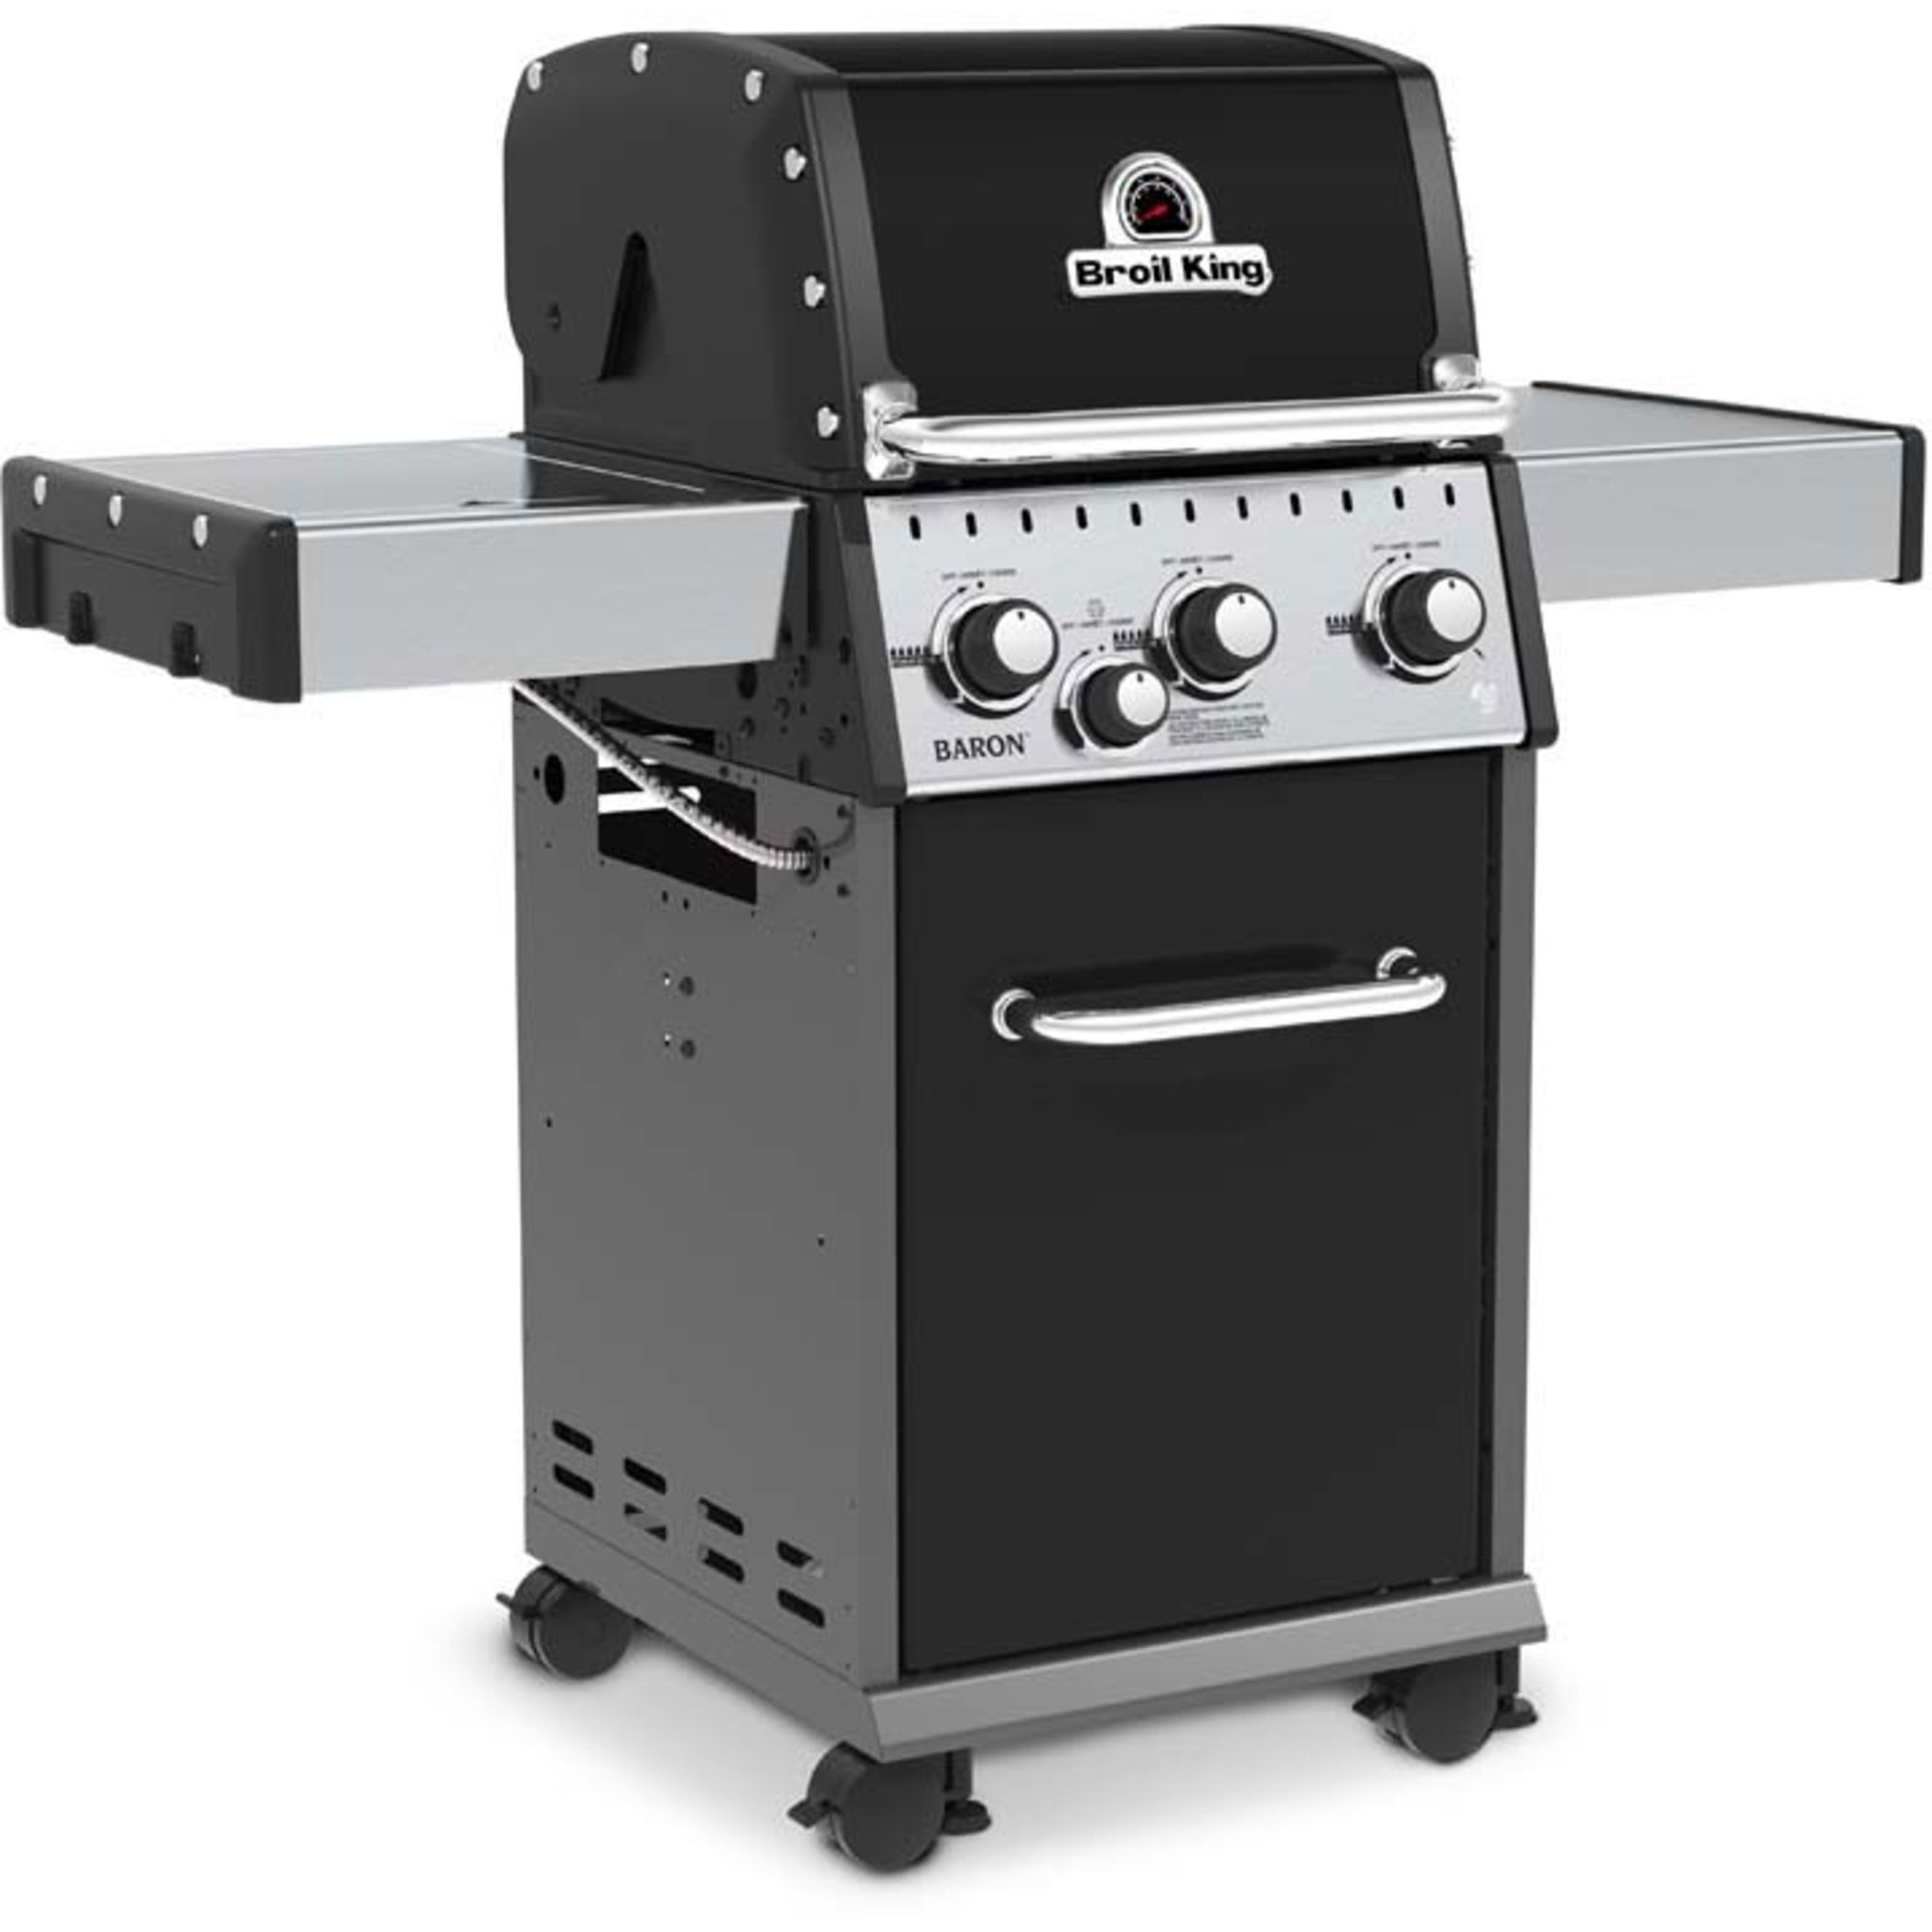 Broil King Baron 340 Gasolgrill